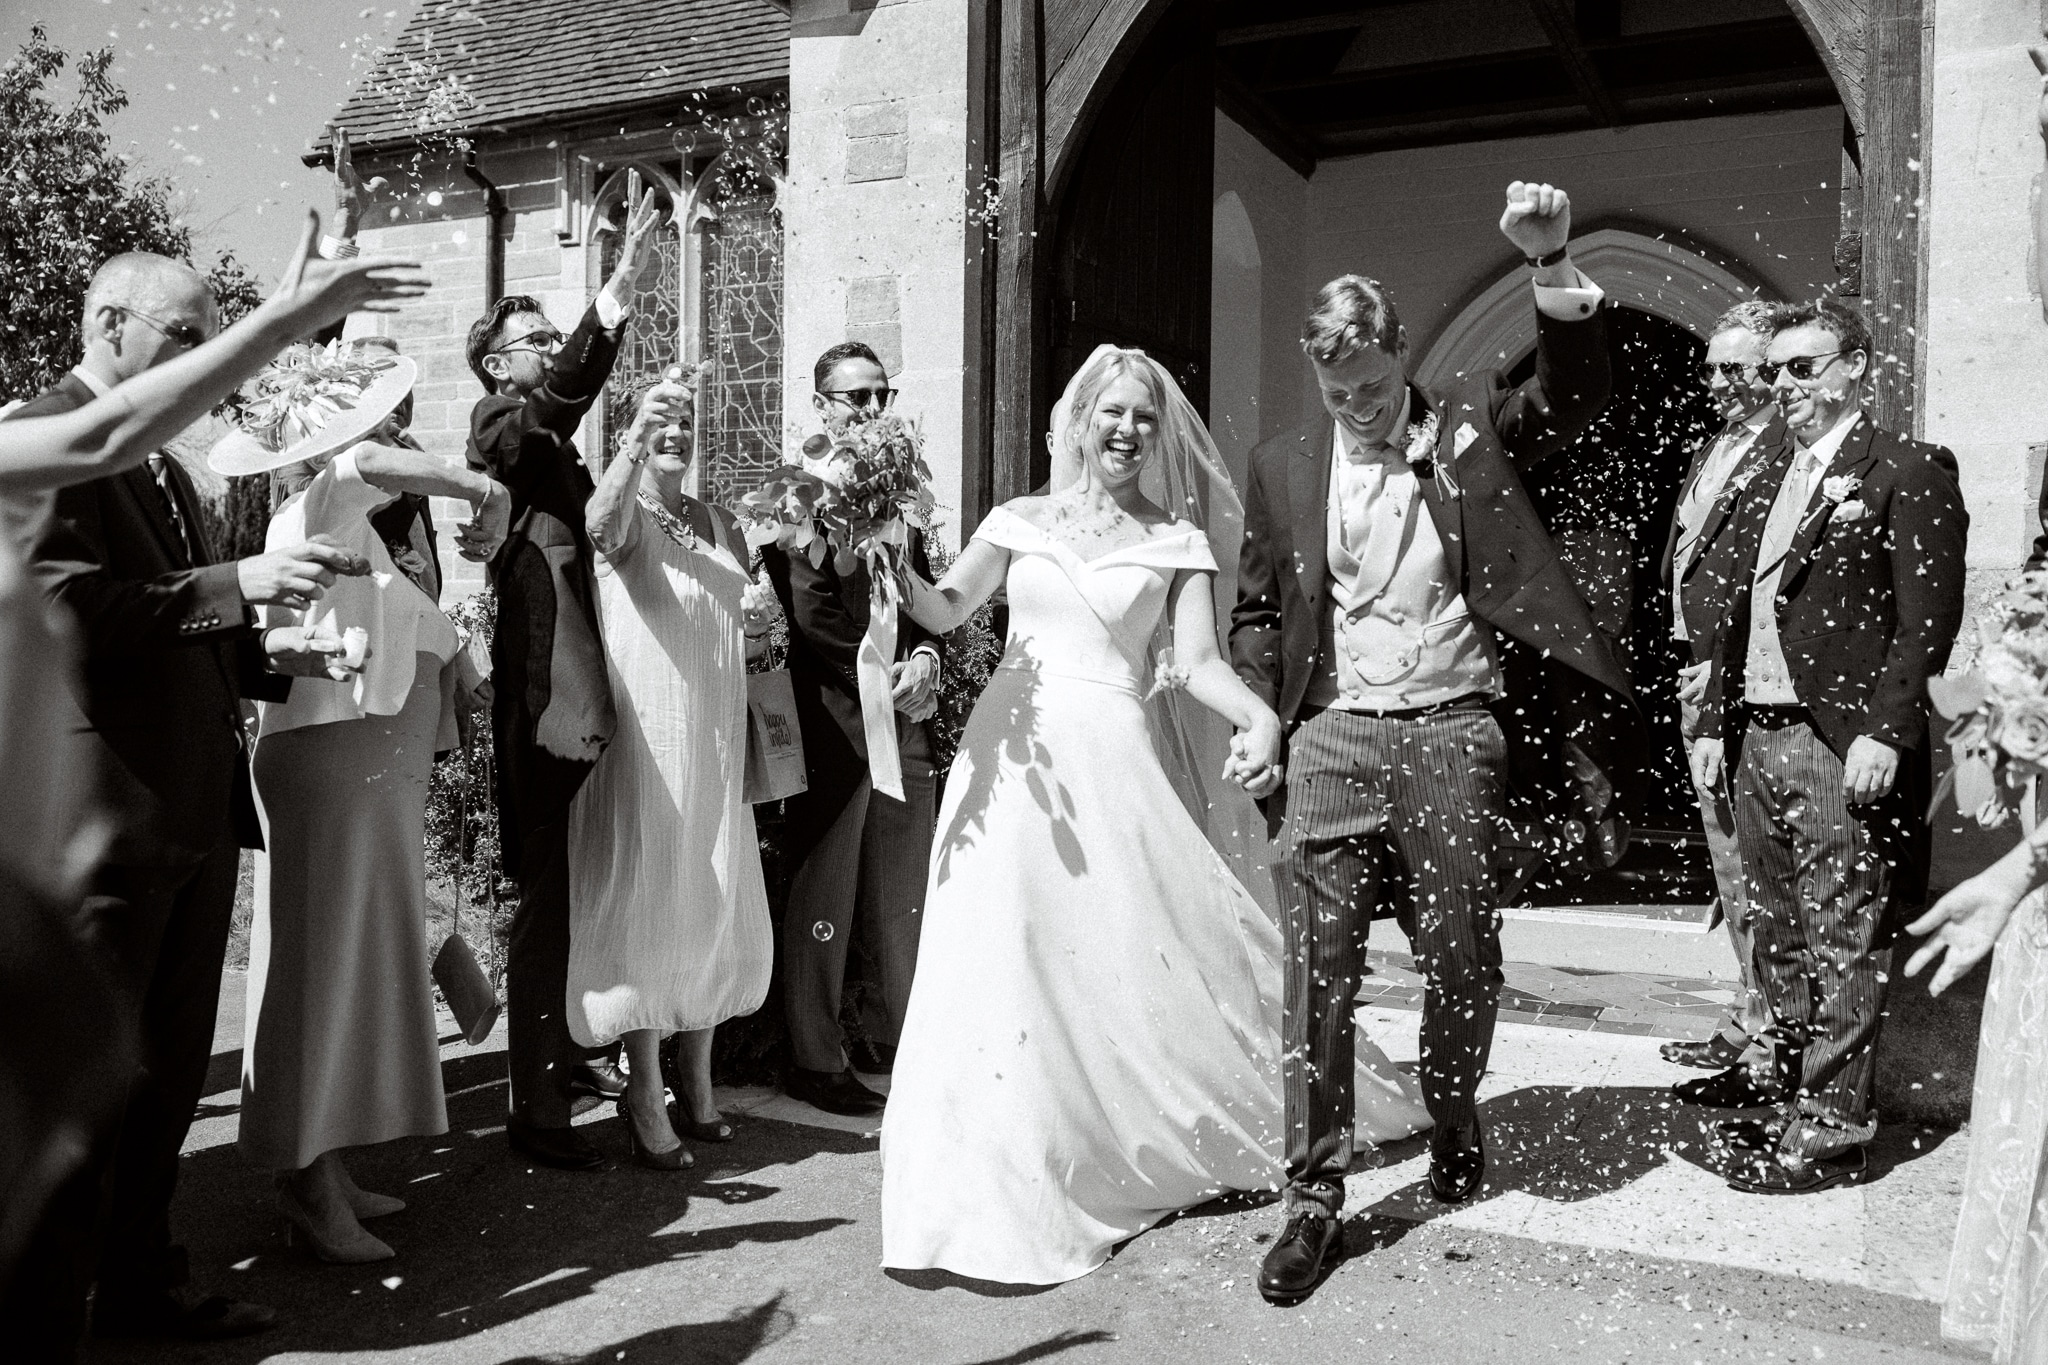 Hastings wedding photography in Bexhill-on-sea